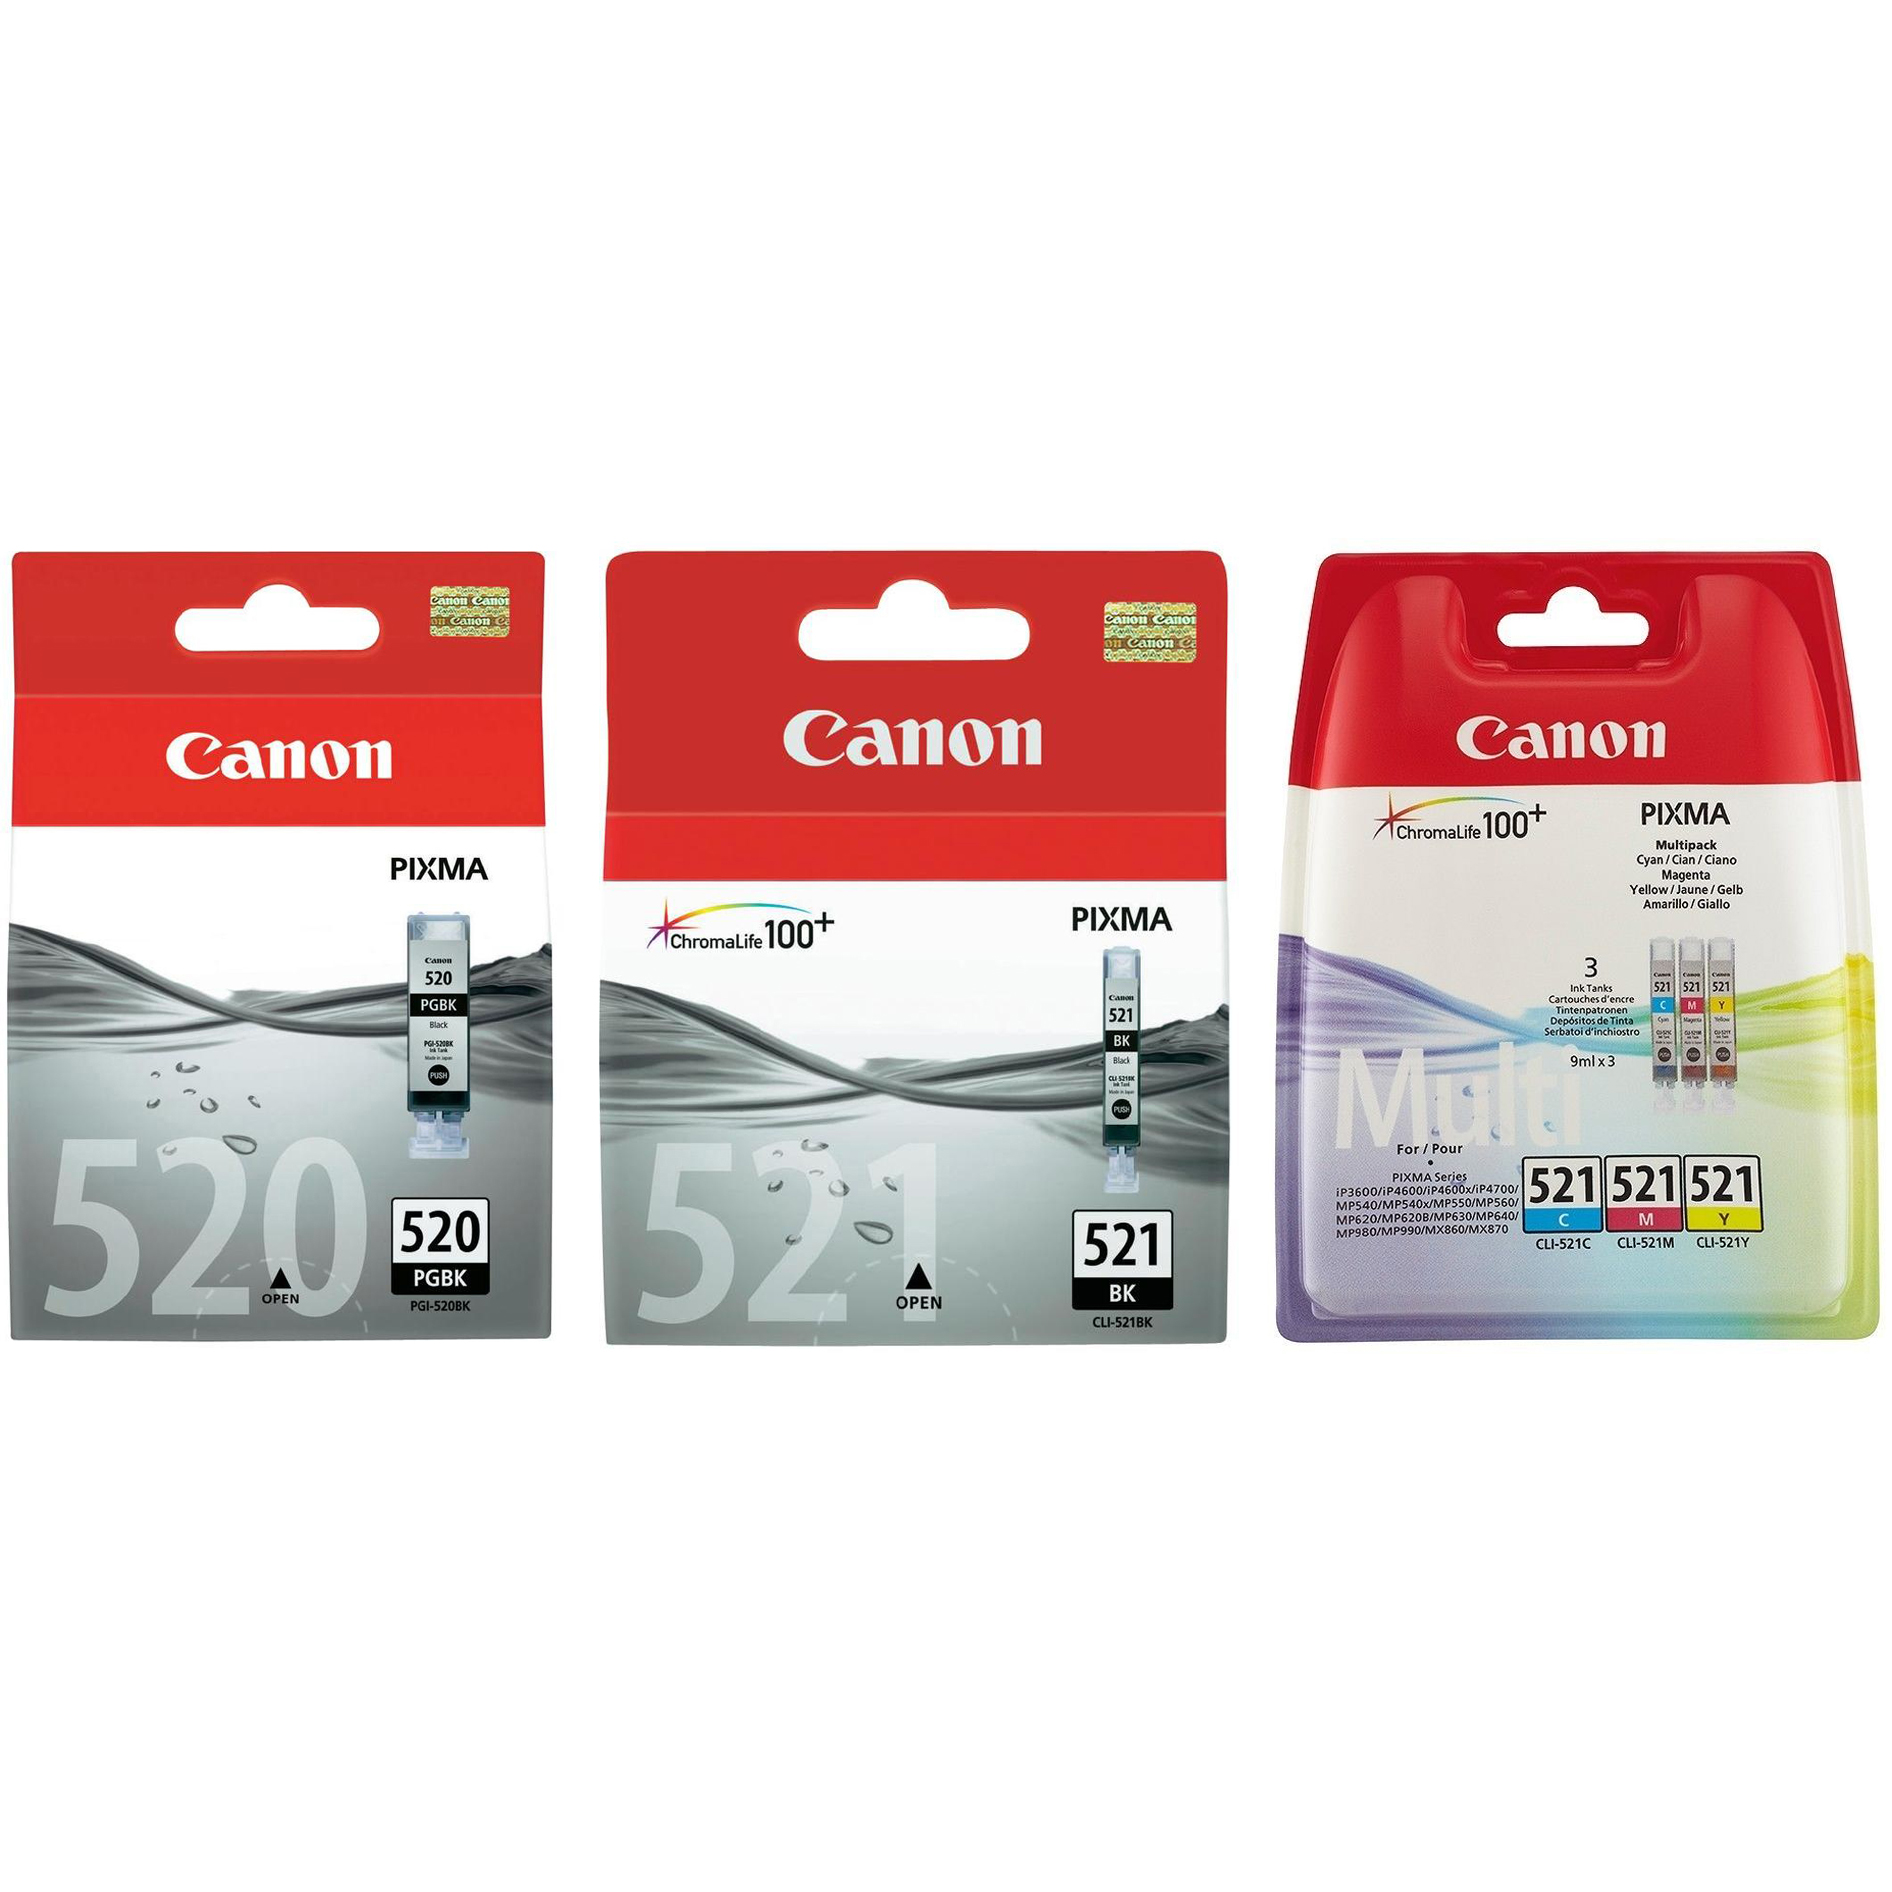 Original Canon PGI-520BK / CLI-521 C, M, Y, K Multipack Ink Cartridges (2932B001/ 2933B001/ 2934B010)